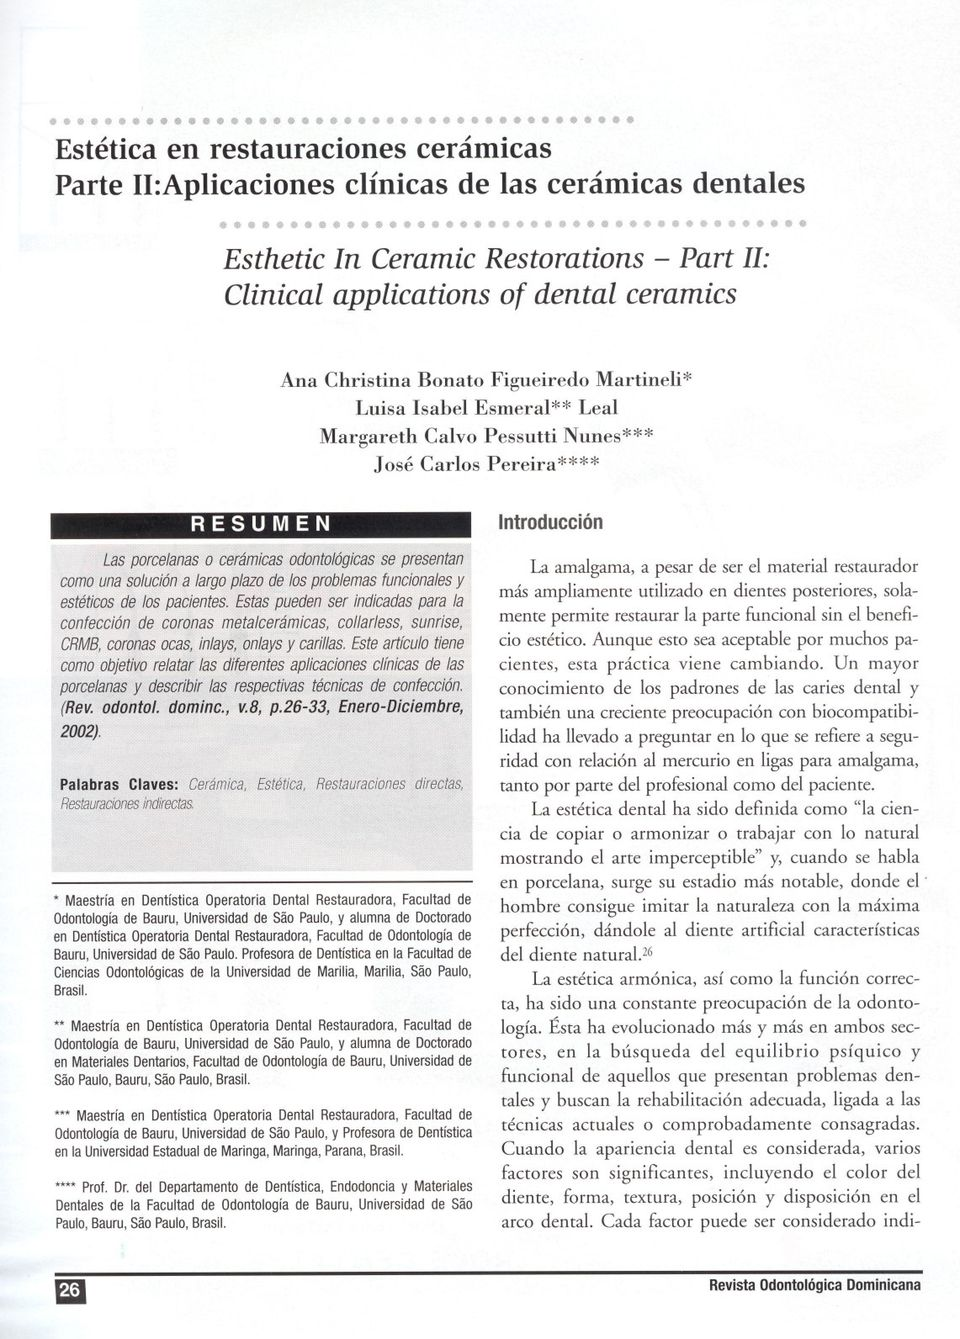 """''''' Esthetic In Ceramic Restorations - Part 11: Clinical applications of dental ceramics Ana Christina Bonato Figueiredo Martineli* Luisa Isabel Esmeral** Leal Margareth Calvo Pessutti Nunes***"